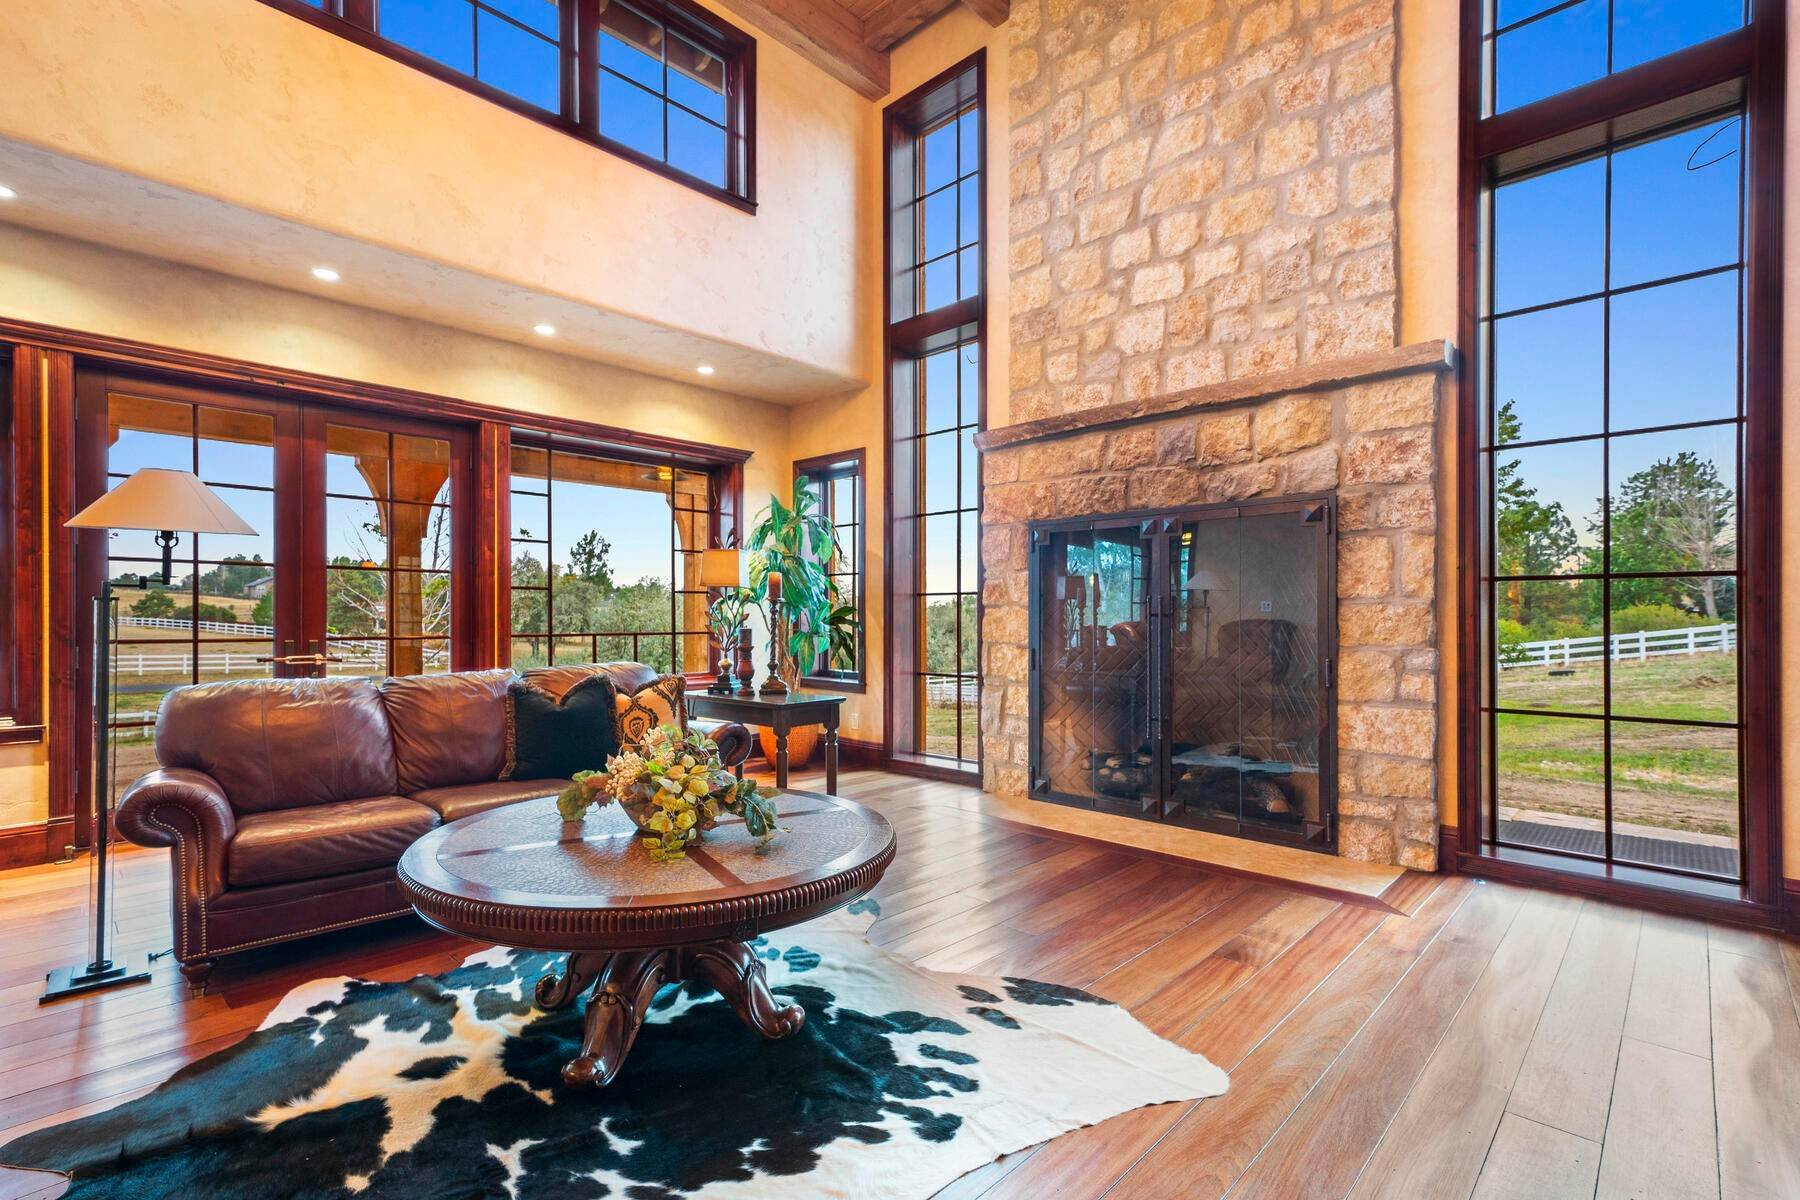 Single Family Homes for Active at Experience extraordinary craftsmanship! 18057 E Hinsdale Avenue Foxfield, Colorado 80016 United States